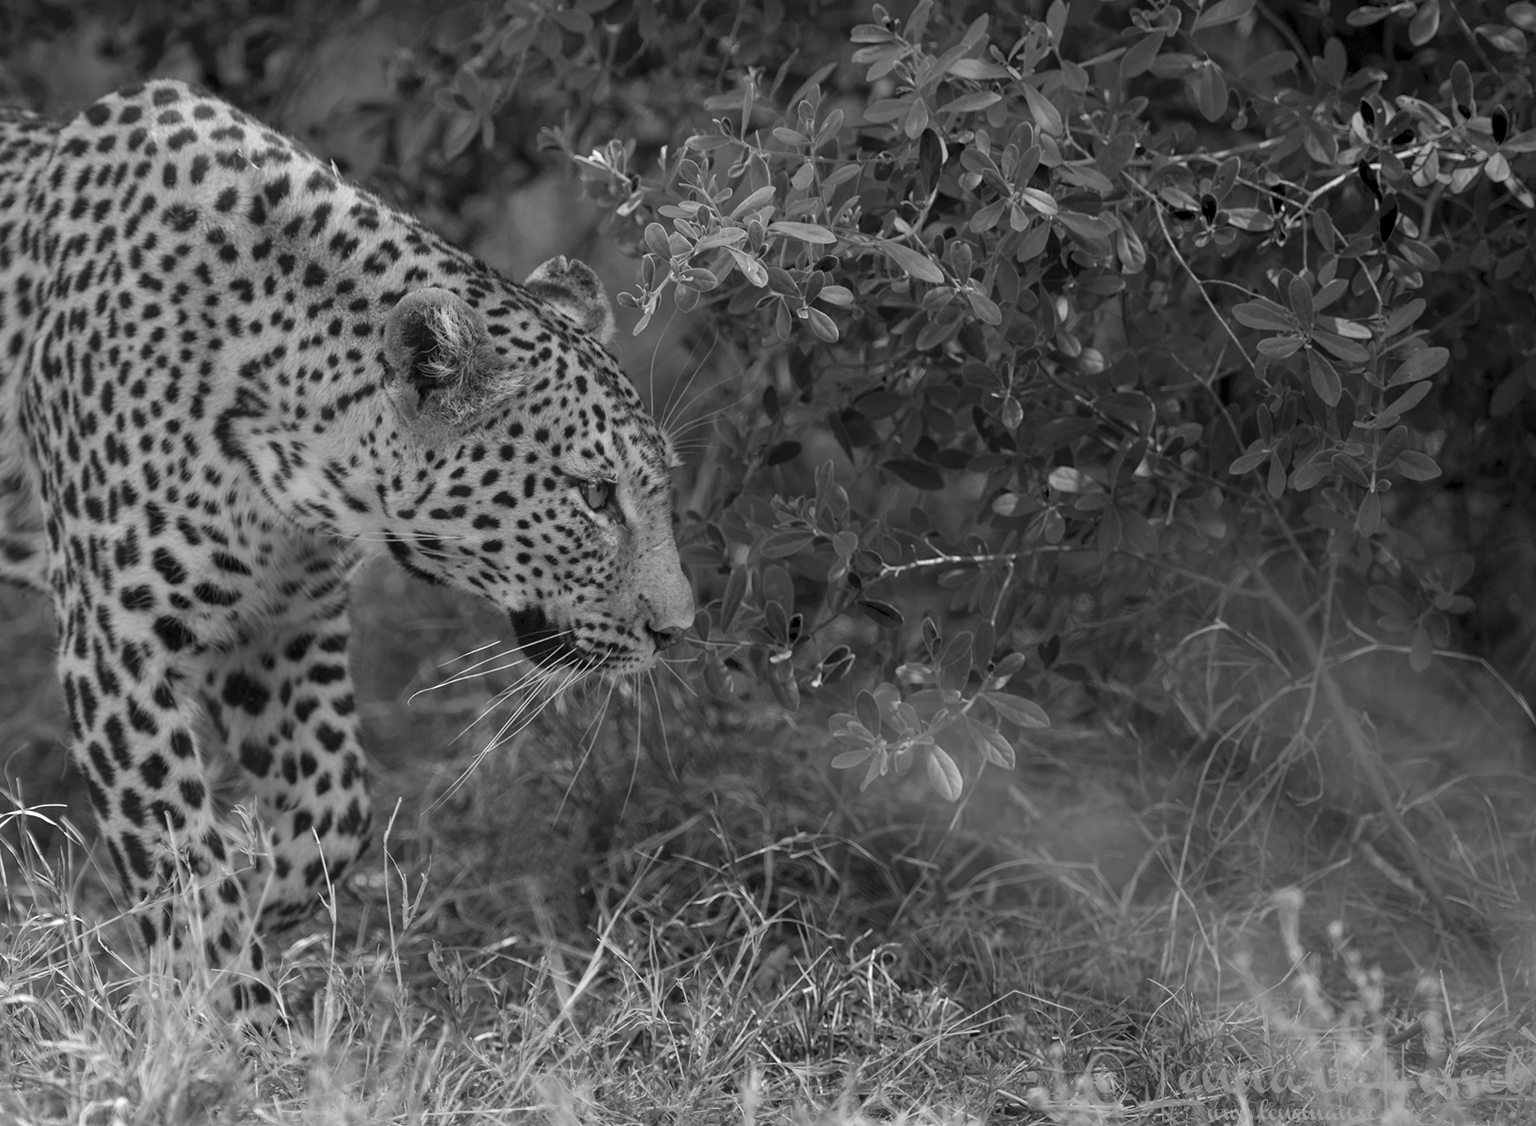 Leopardess stealth mode in Savuti, Botswana